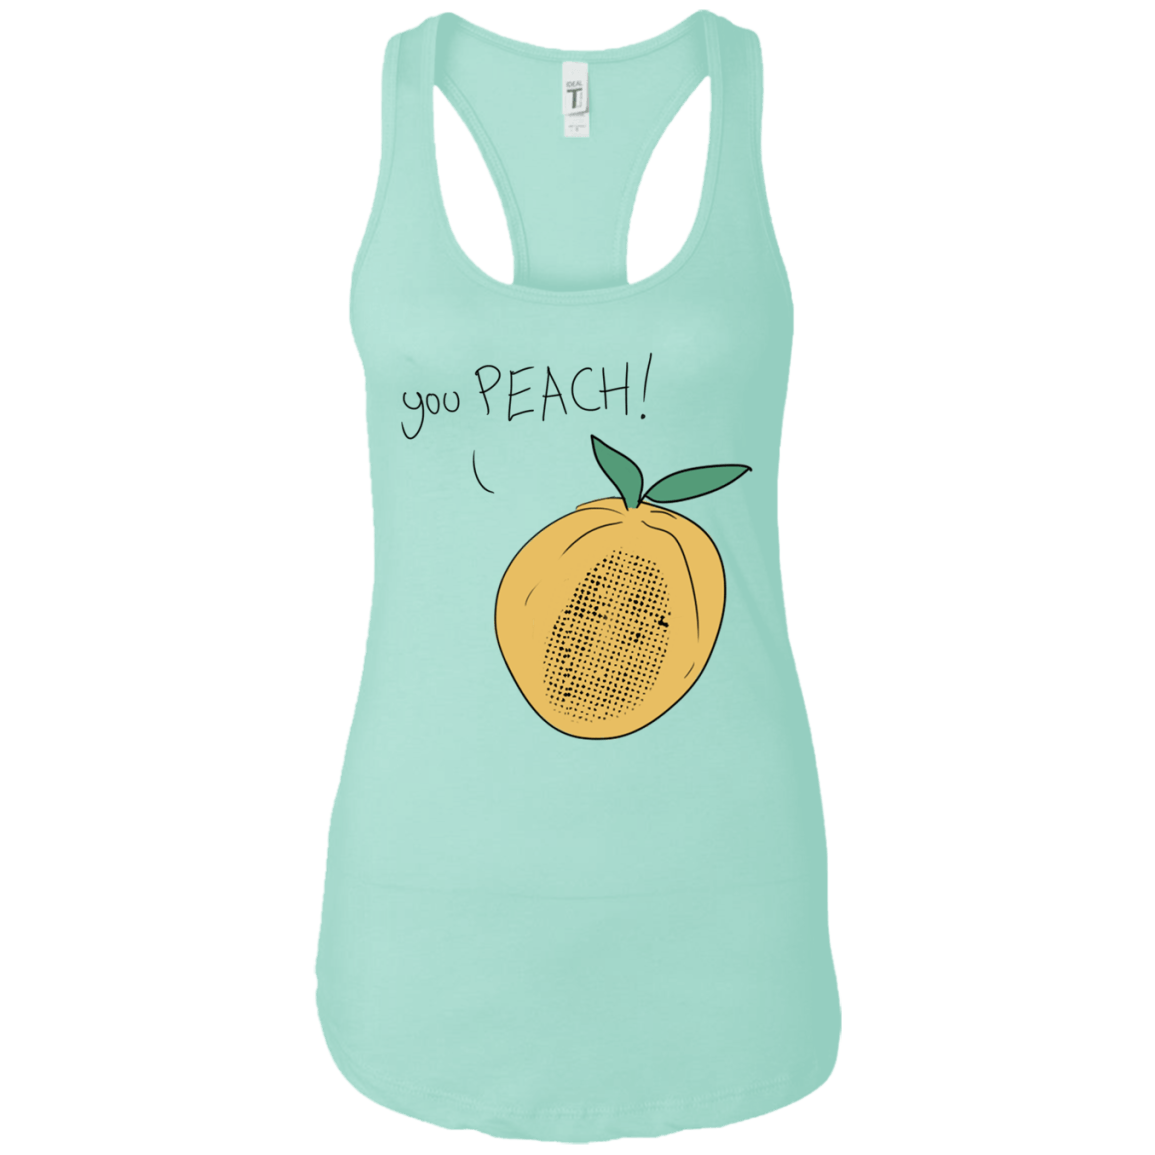 You Peach! Racerback